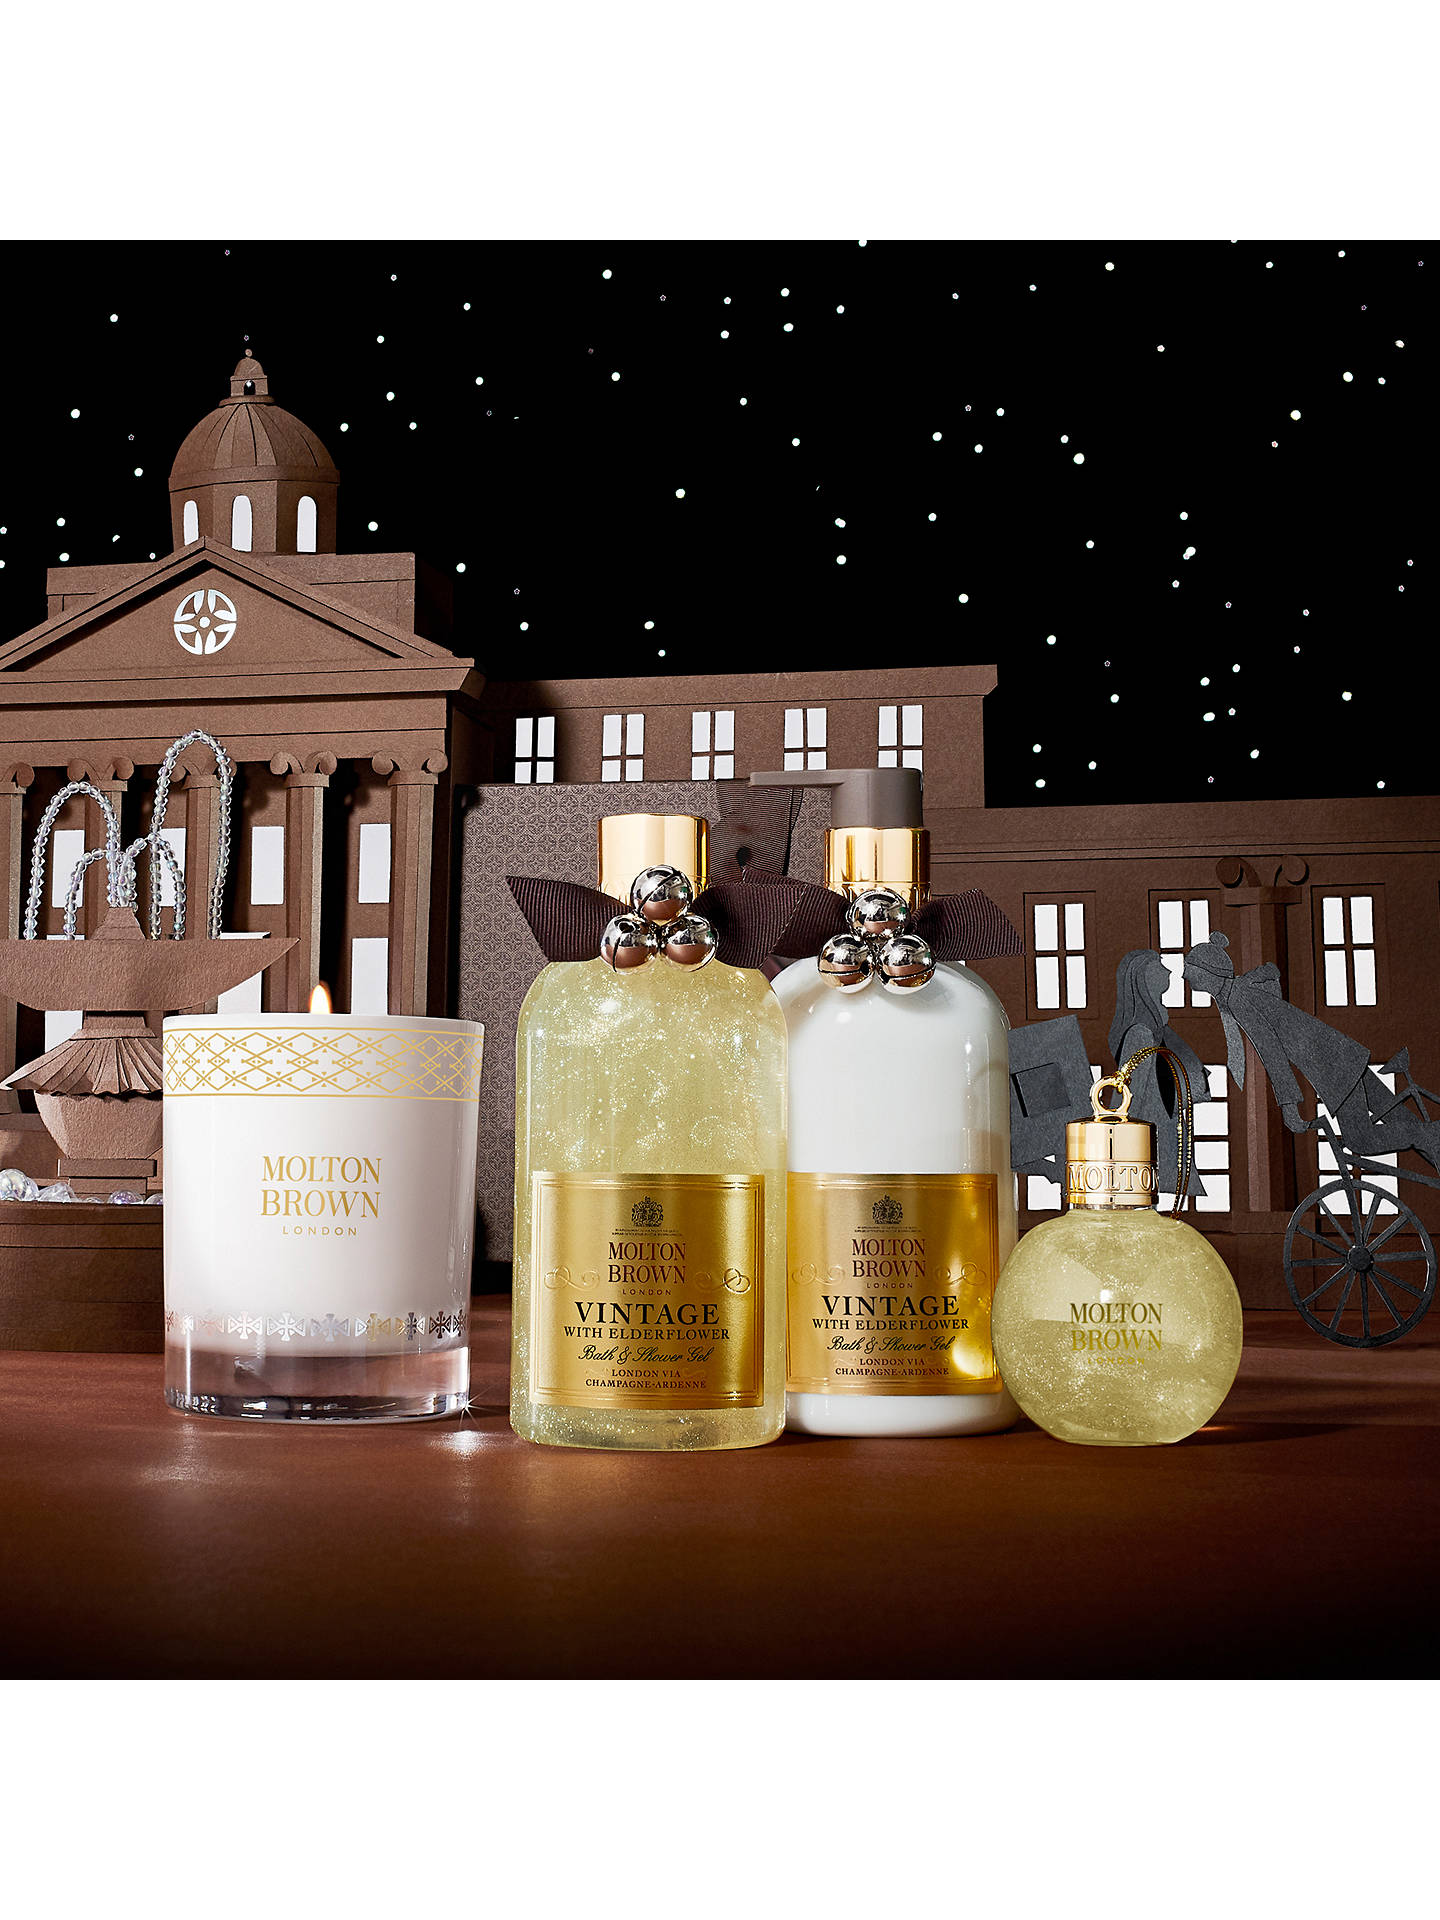 BuyMolton Brown Vintage With Elderflower Body Wash Festive Bauble Online at johnlewis.com